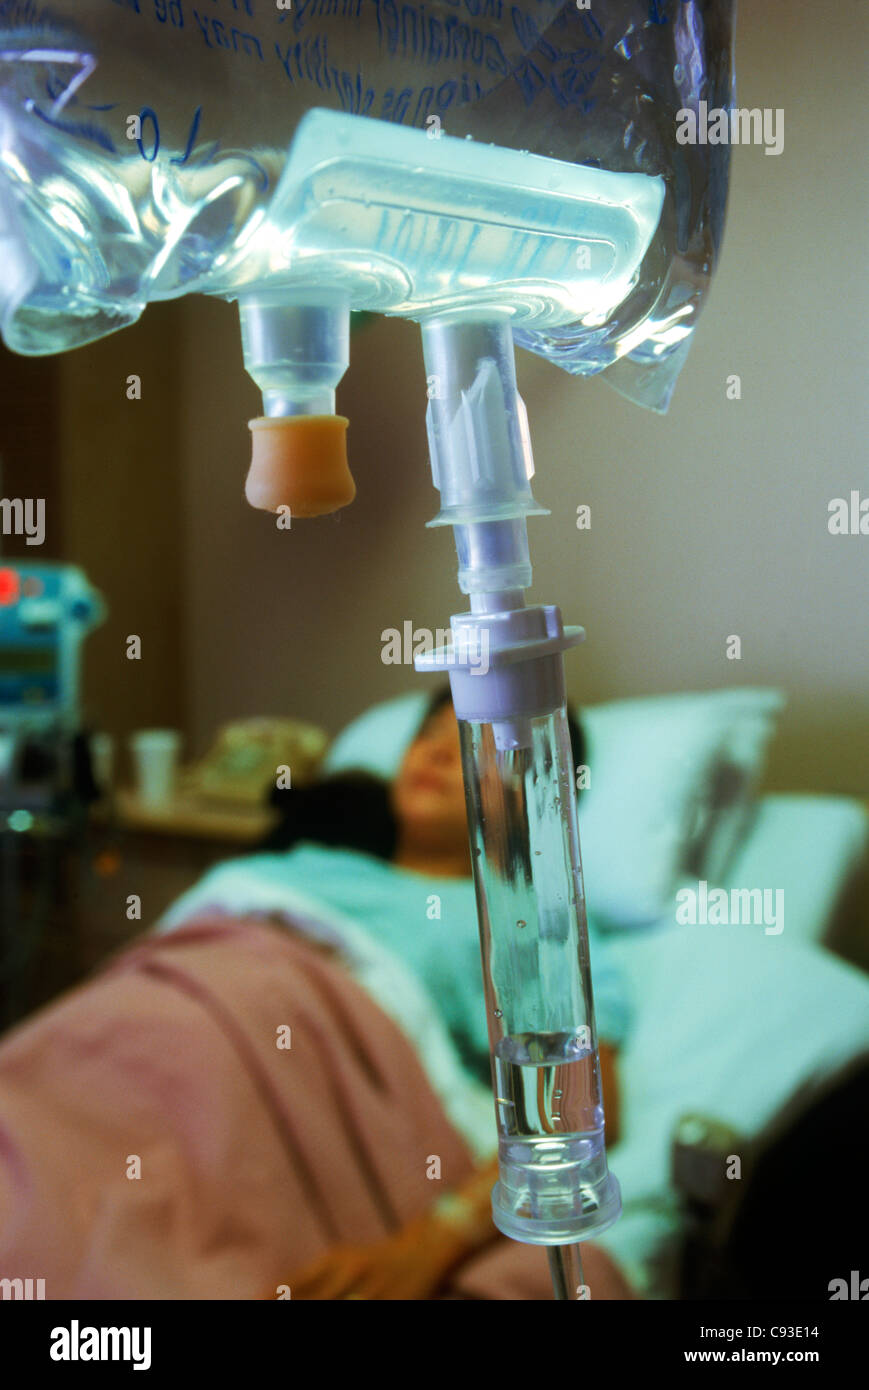 Female patient in hospital bed connected to IV - Stock Image